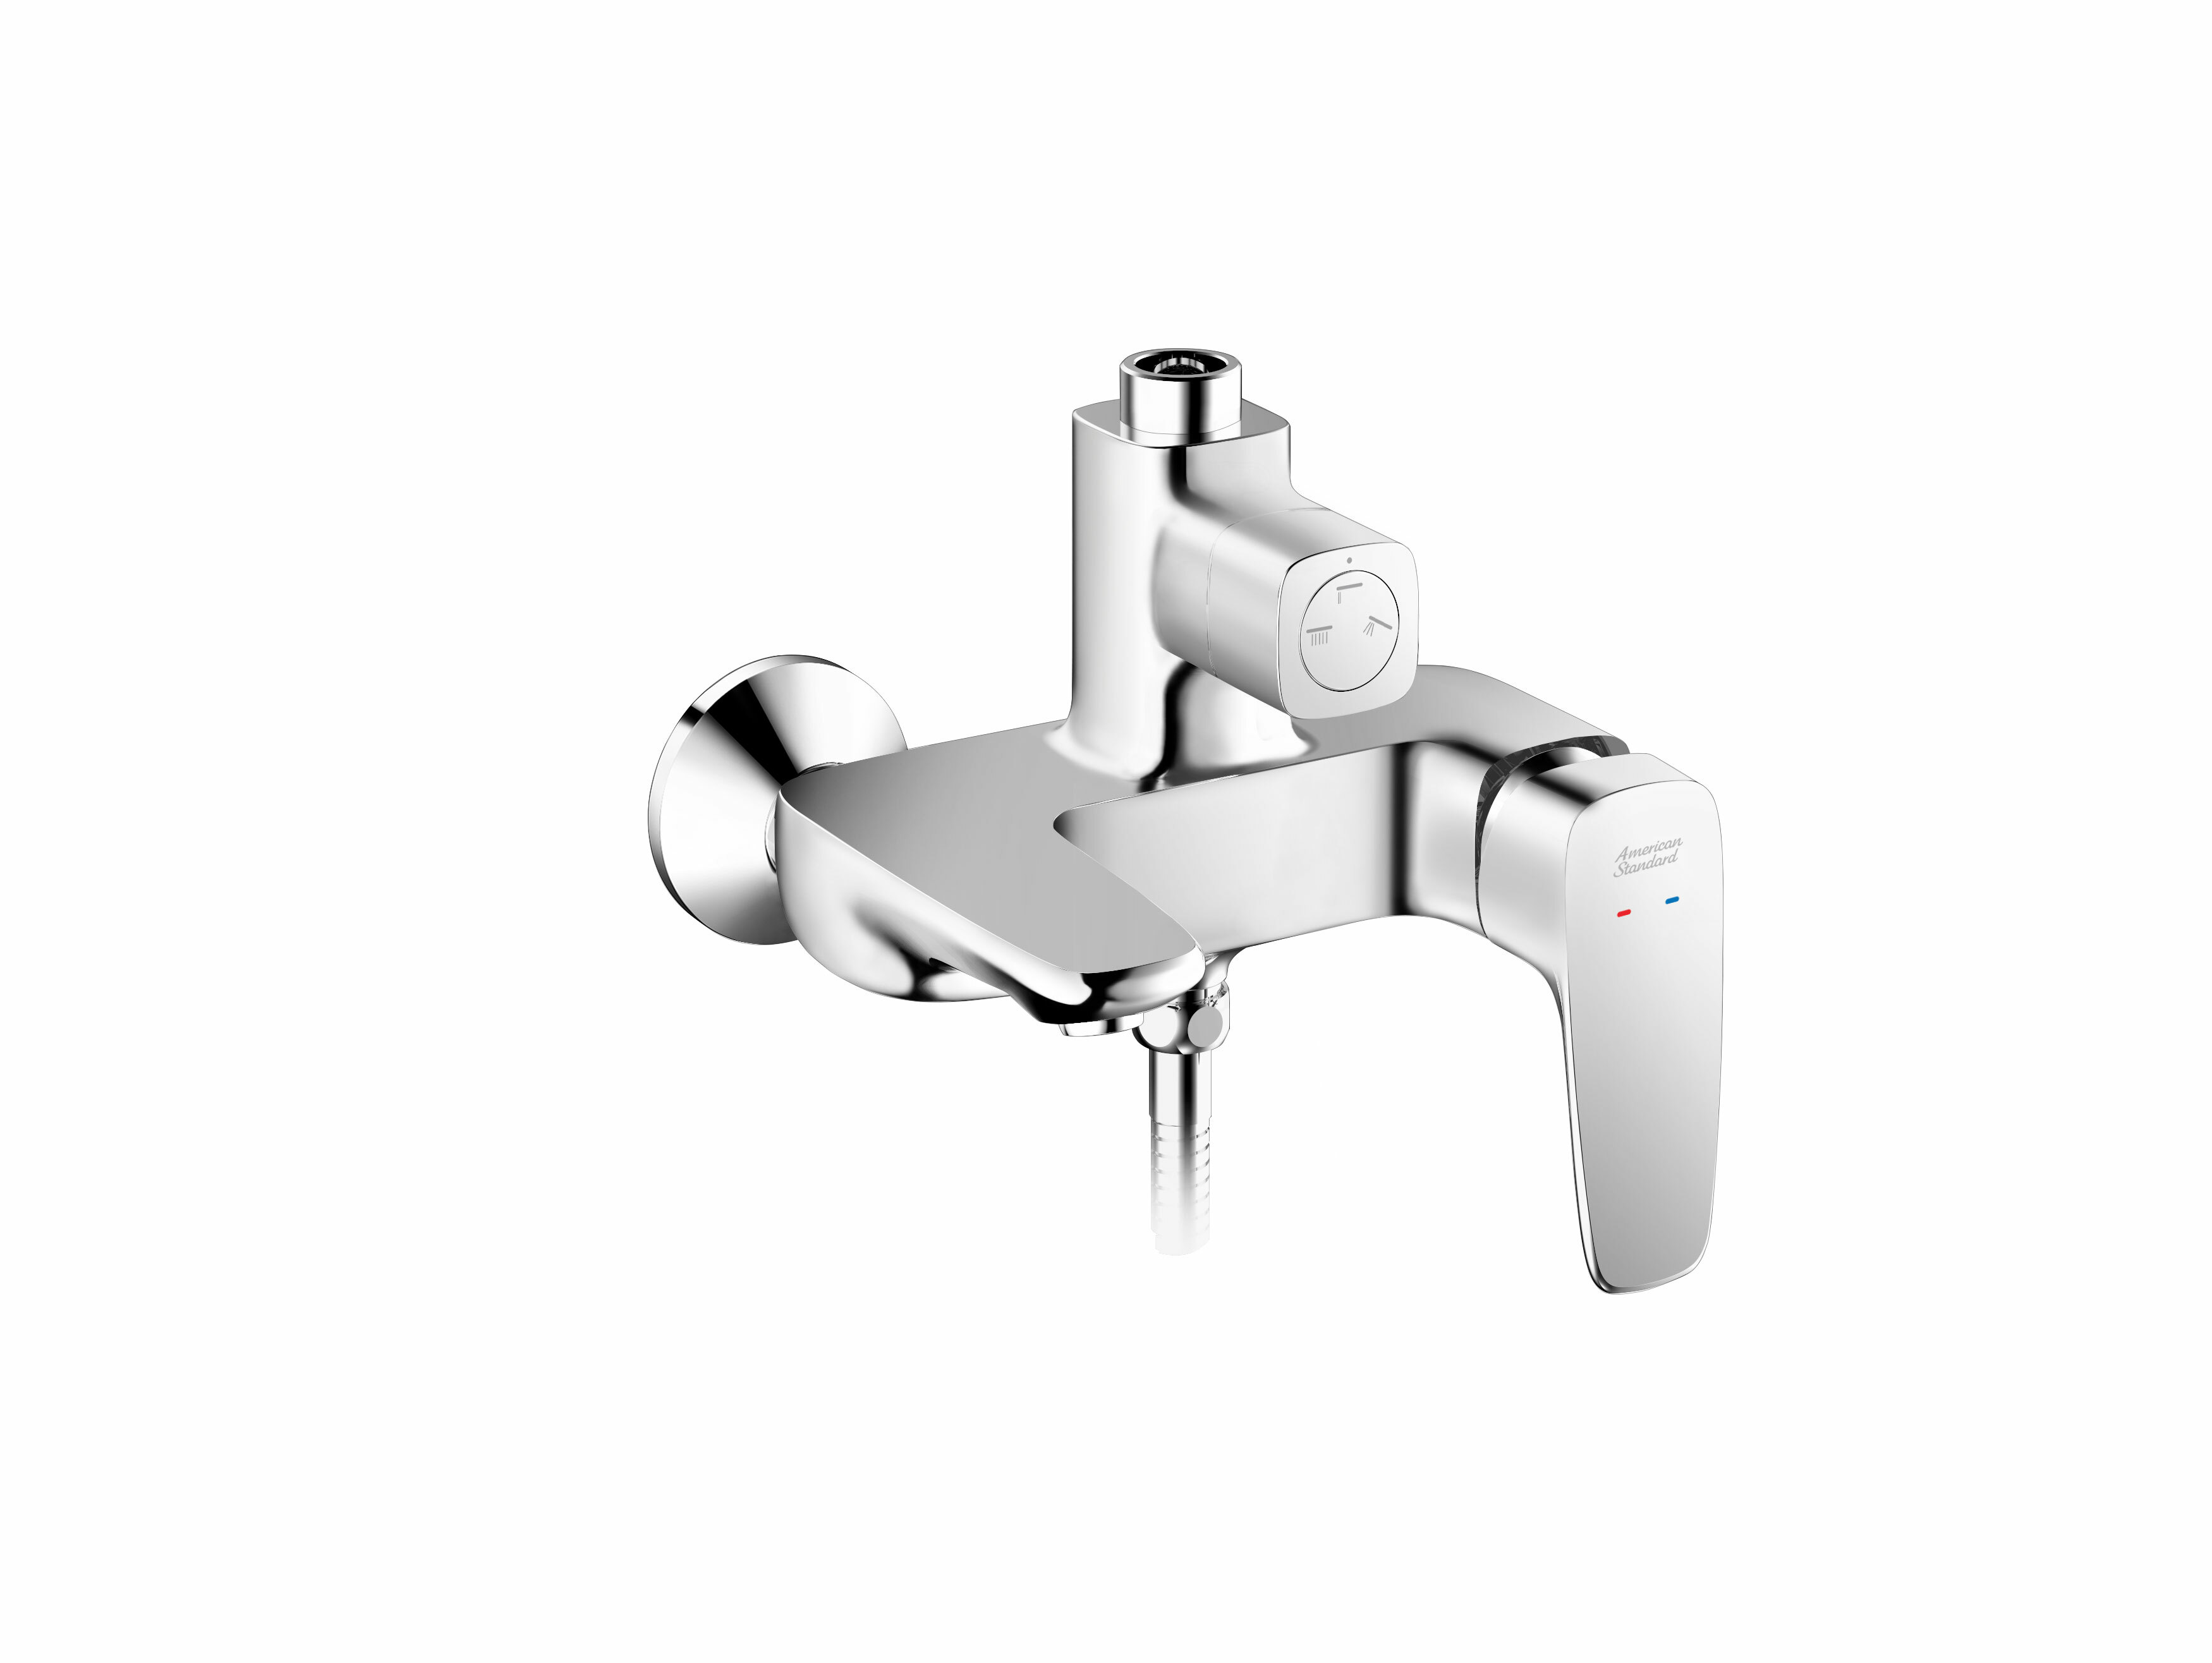 Signature exposed Bath & Shower mixer with integrated Rainshower kit